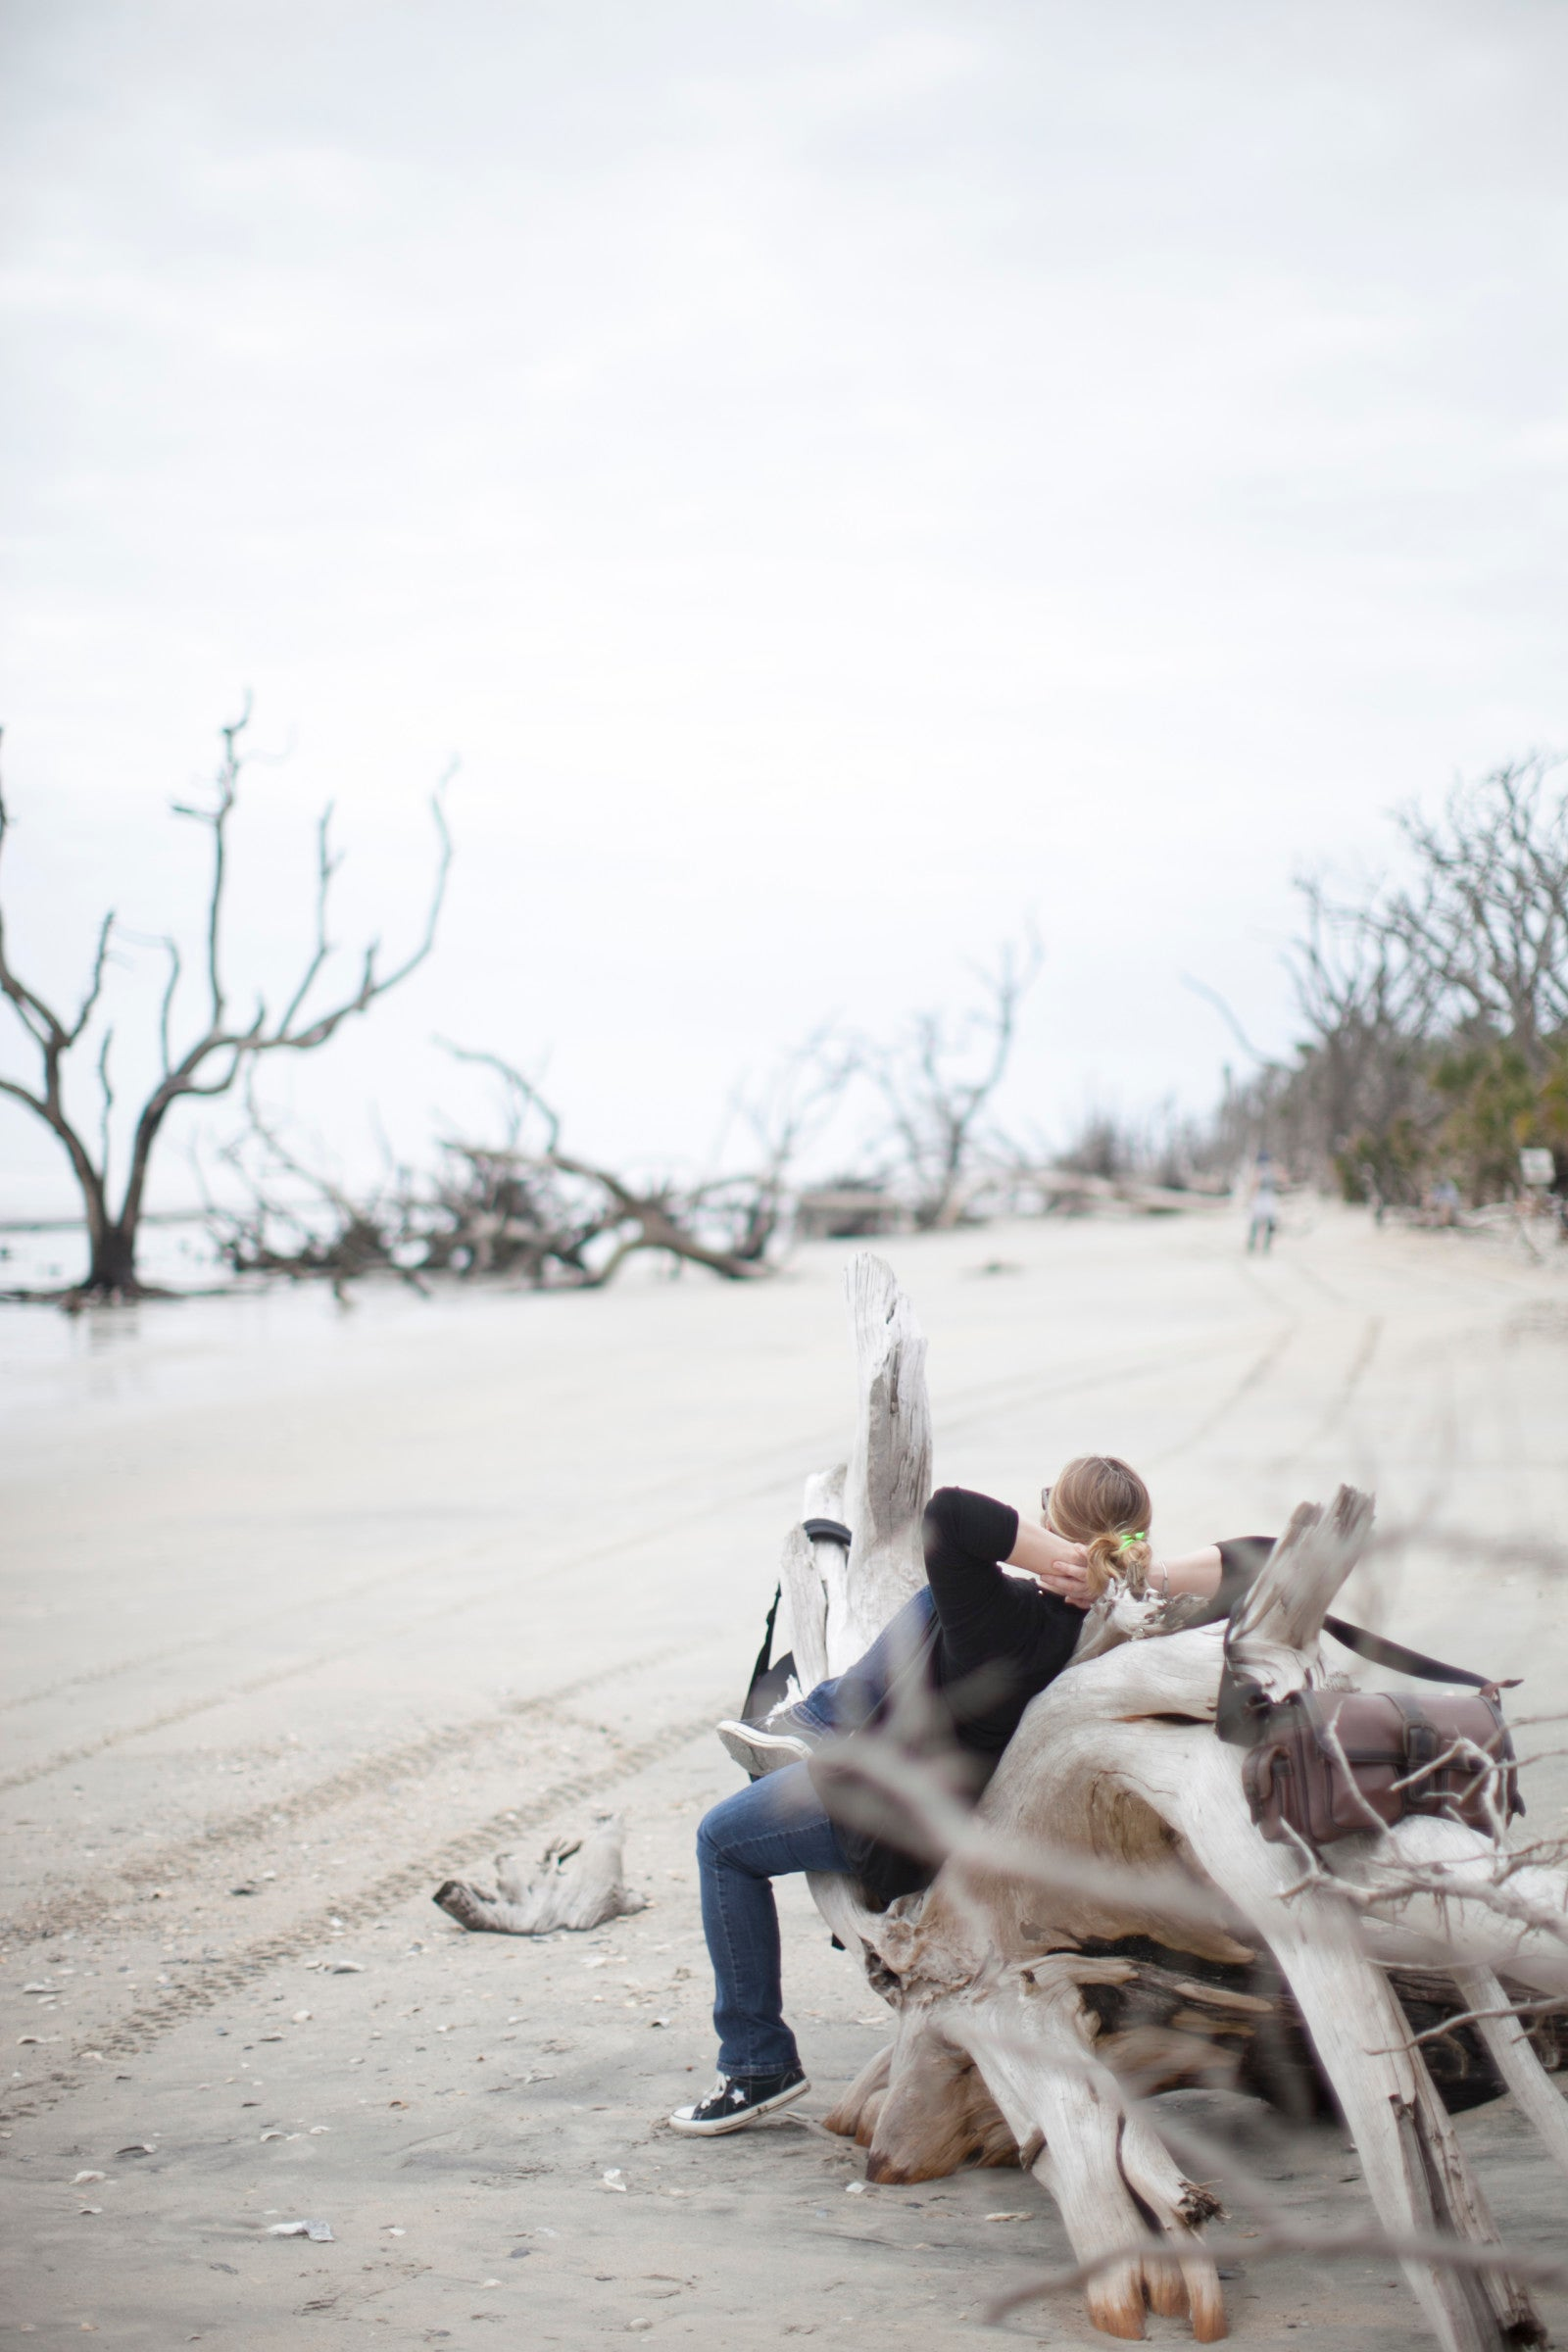 Erika Firm at Botany Bay on Edisto Island, SC photo by Zoomworks Photography